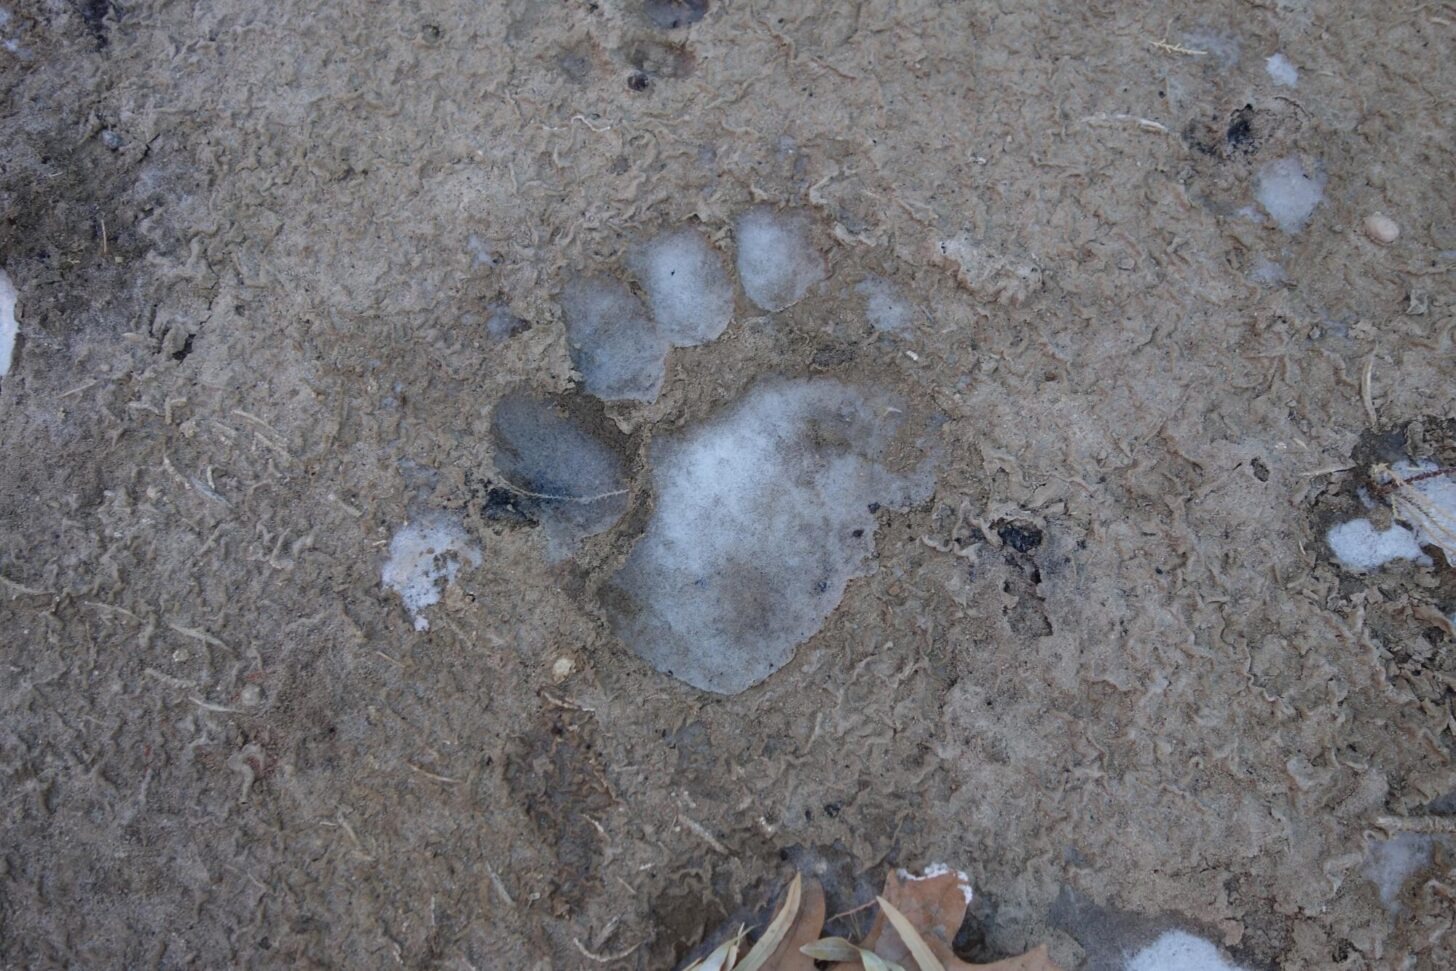 Ice in a bear print.